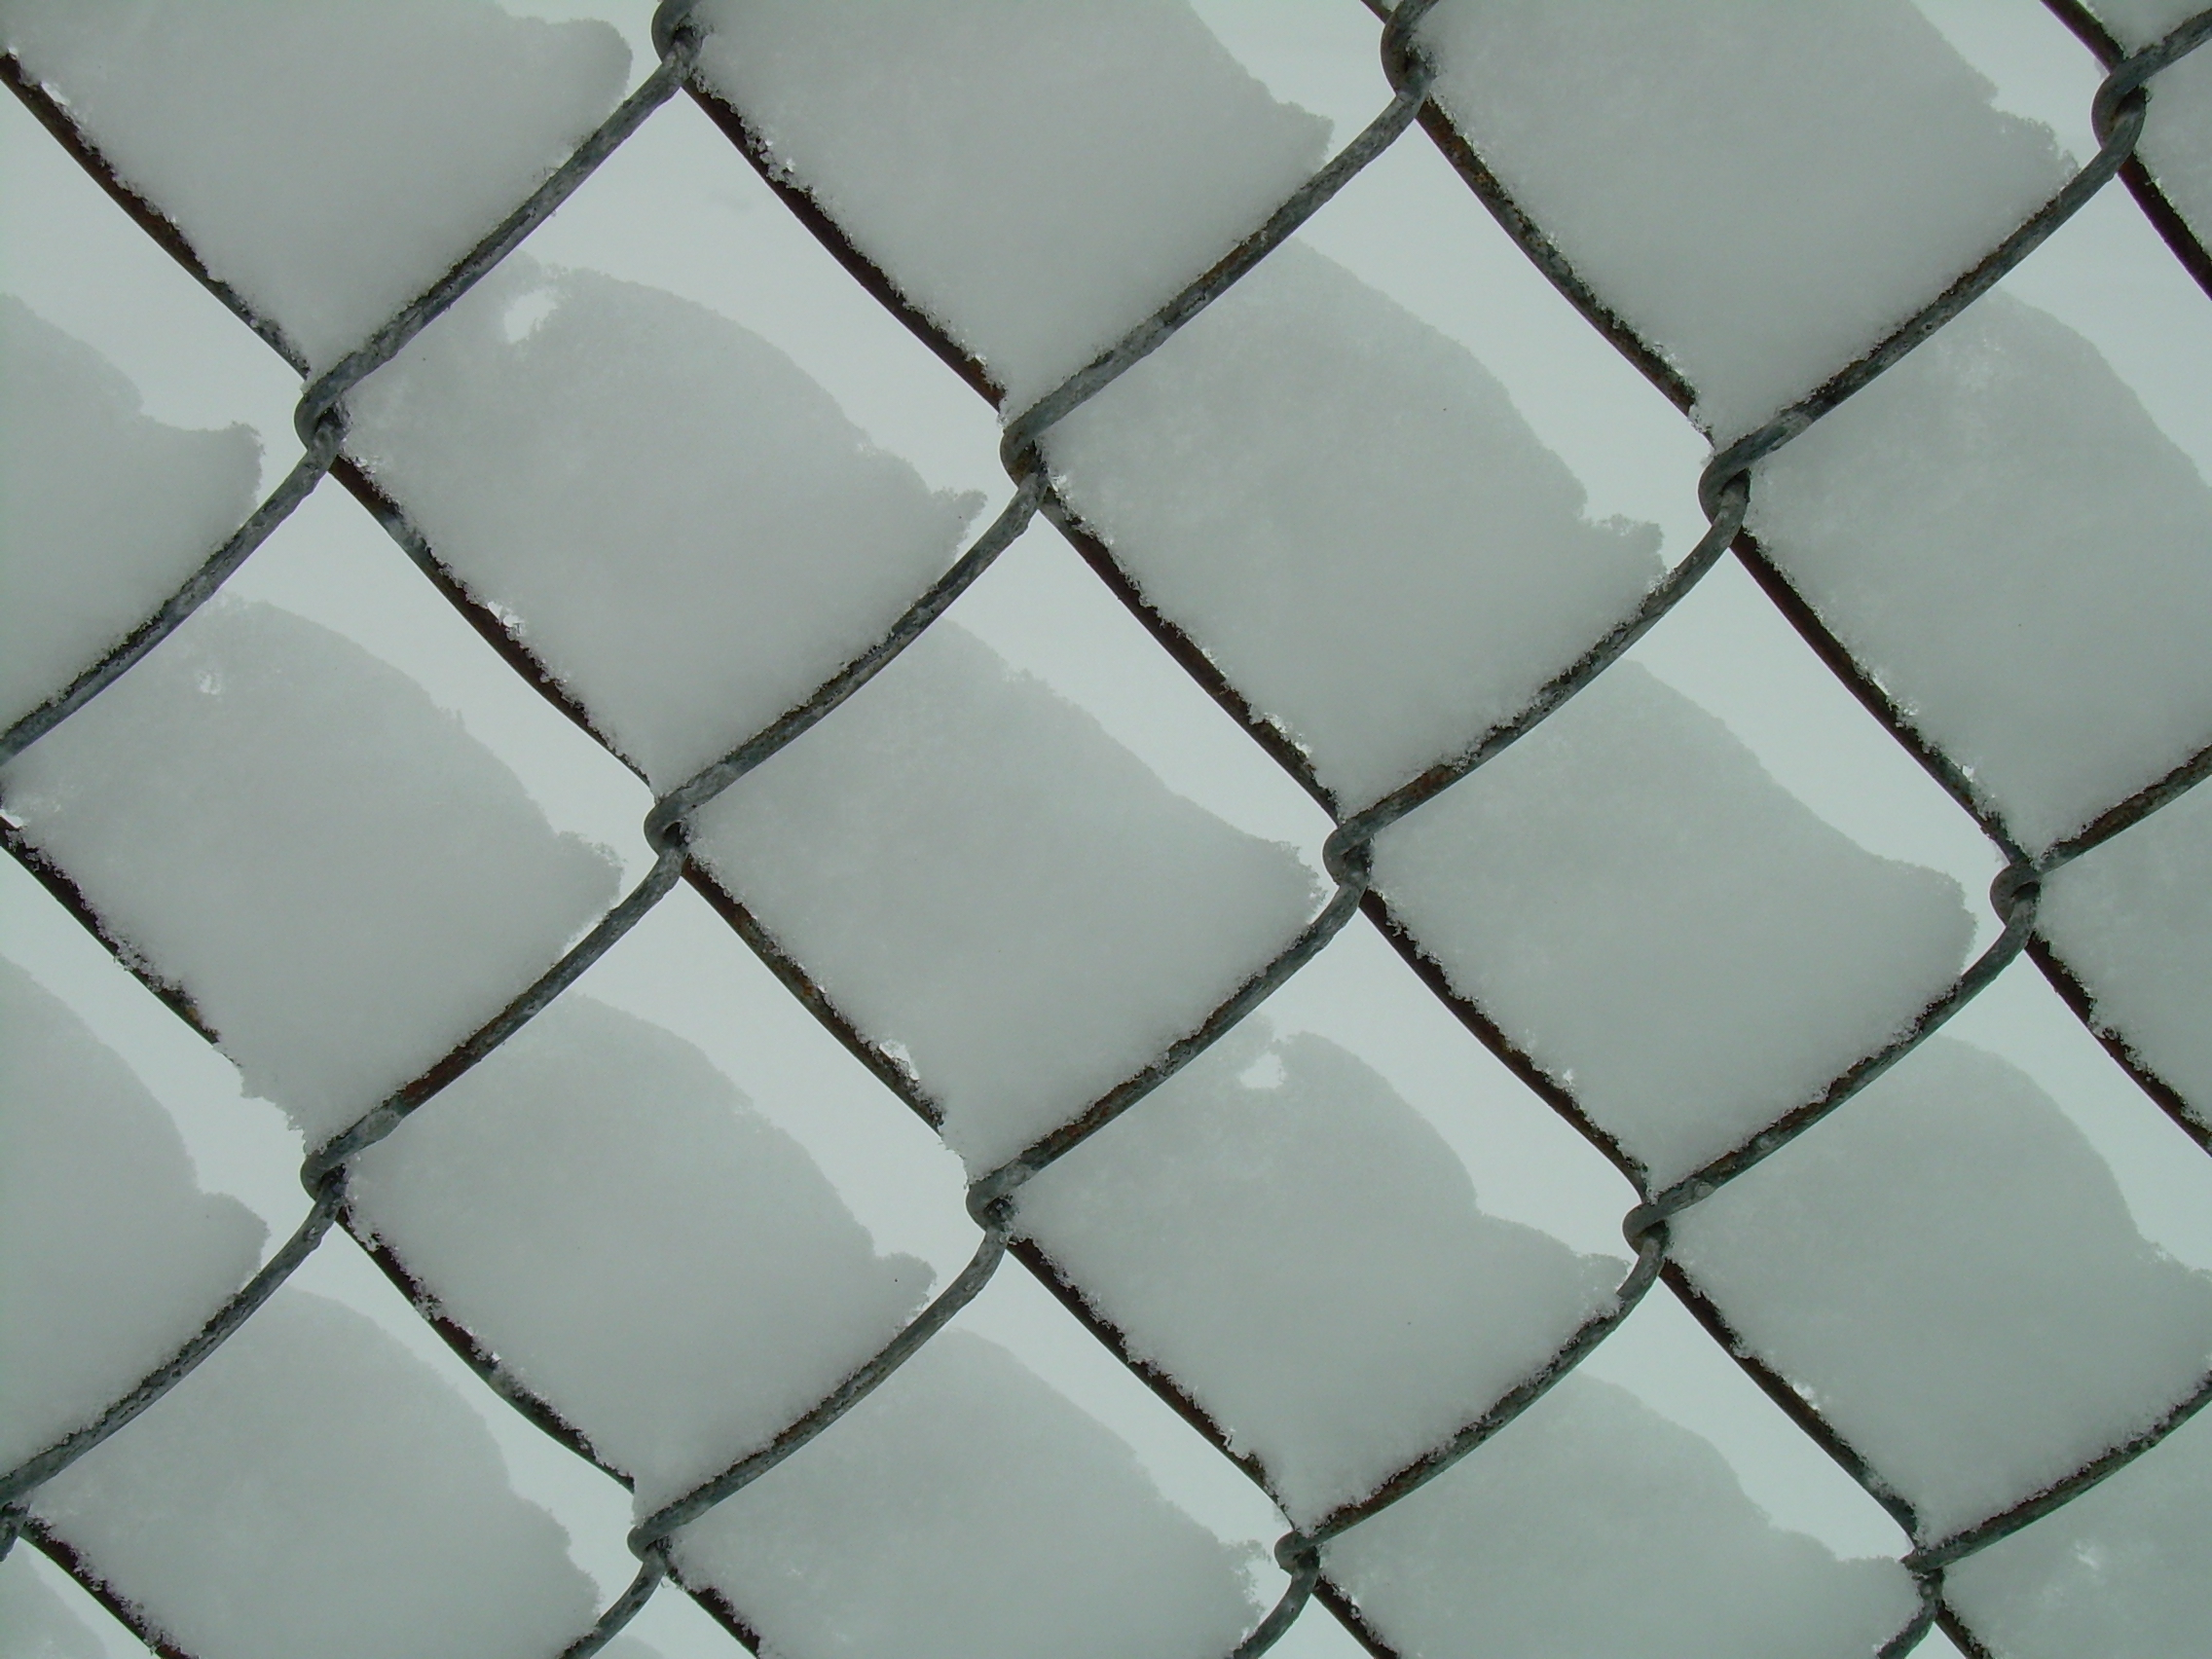 high res snow on a chain link fence applefritter